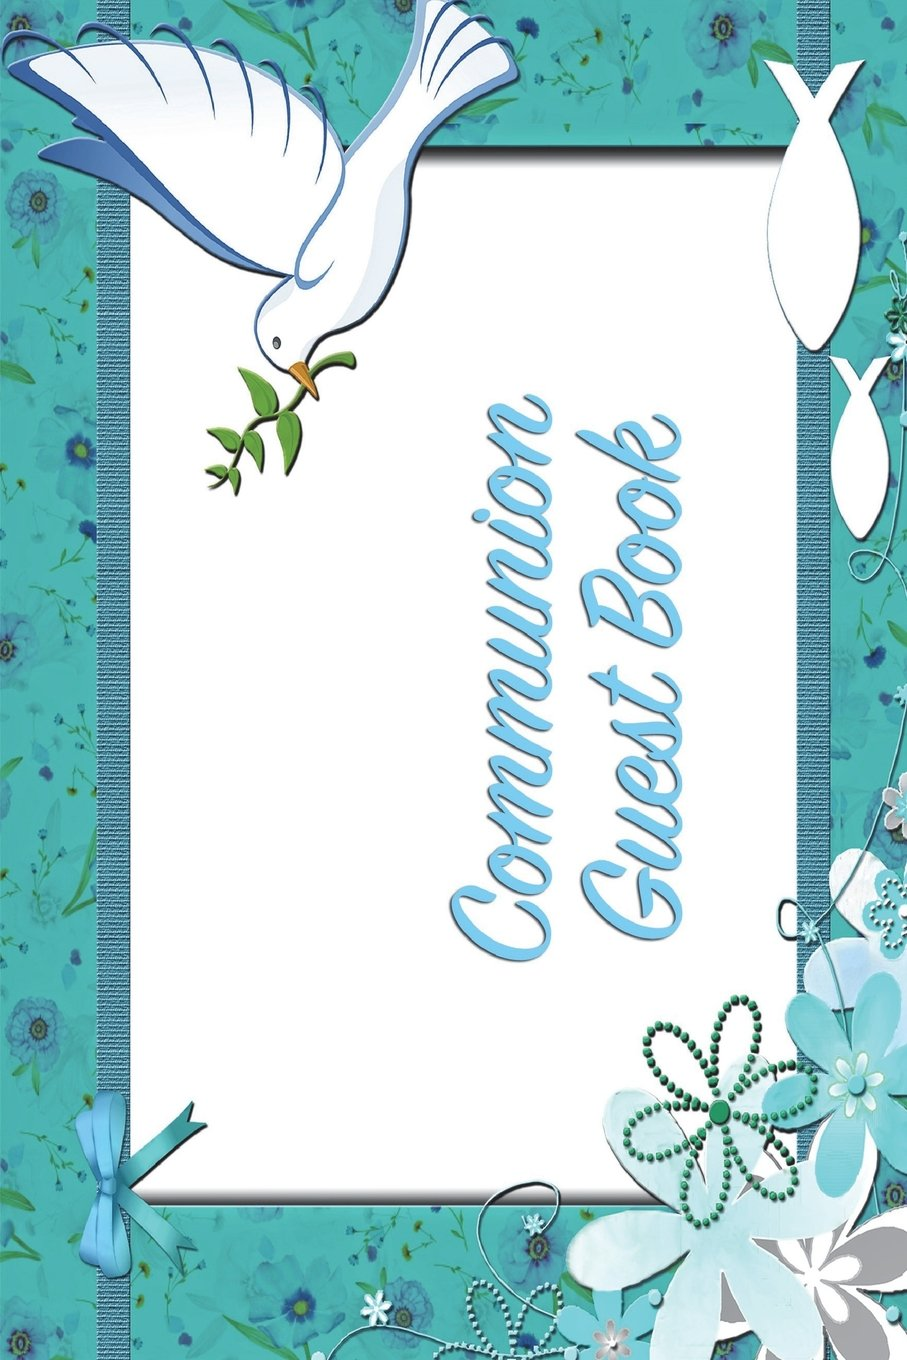 Read Online Communion Guestbook: Versatile 6x9 Communion / Confirmation  Notebook Guestbook Journal for Special Occasions ~ For Visitors Best Wishes Guest Book ... Relatives and More - Communion Dove Cover PDF